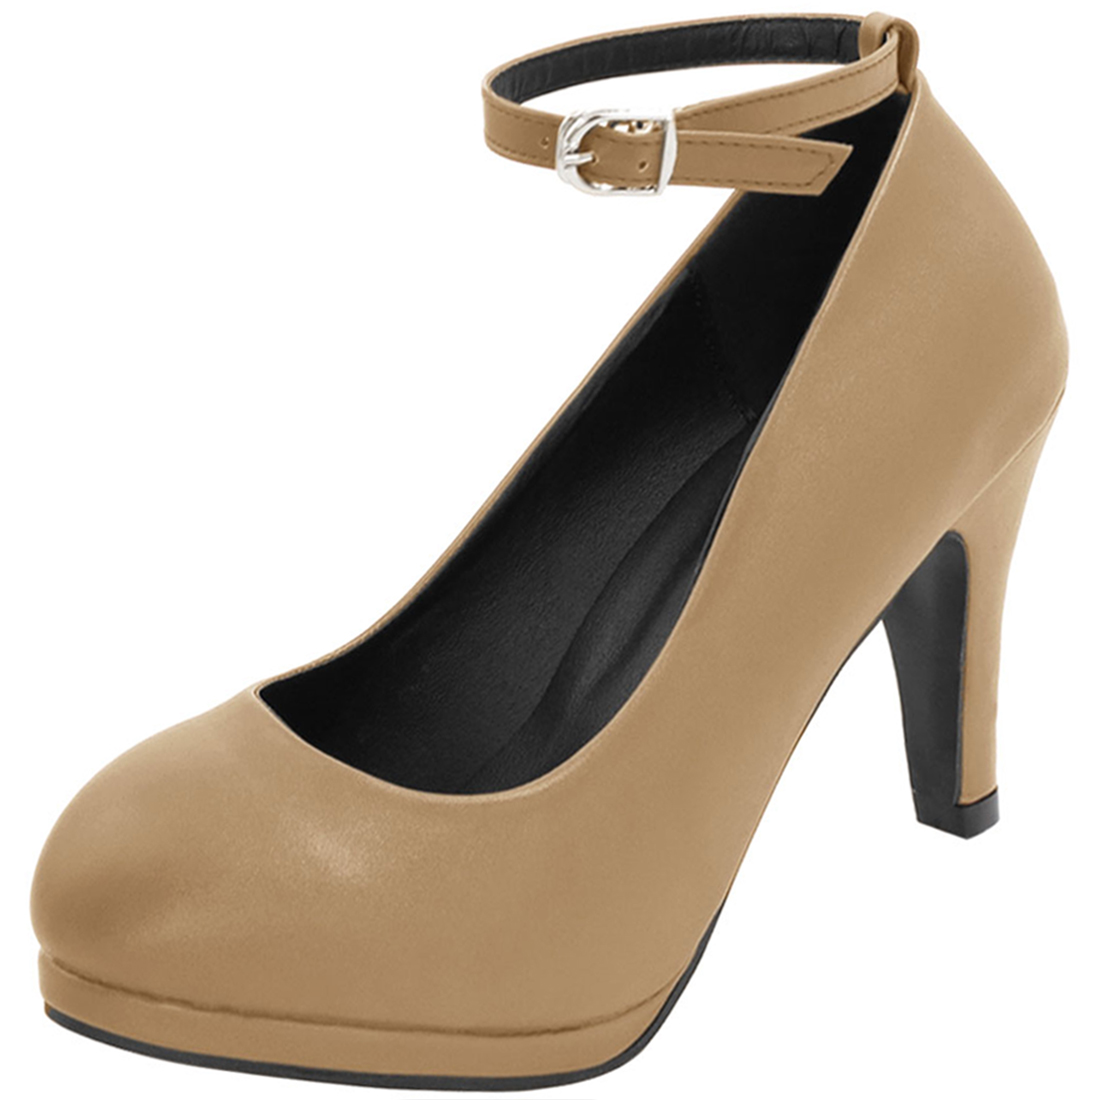 Woman Rounded Toe Mid Heel Length Ankle Strap Pumps Dark Beige US 7